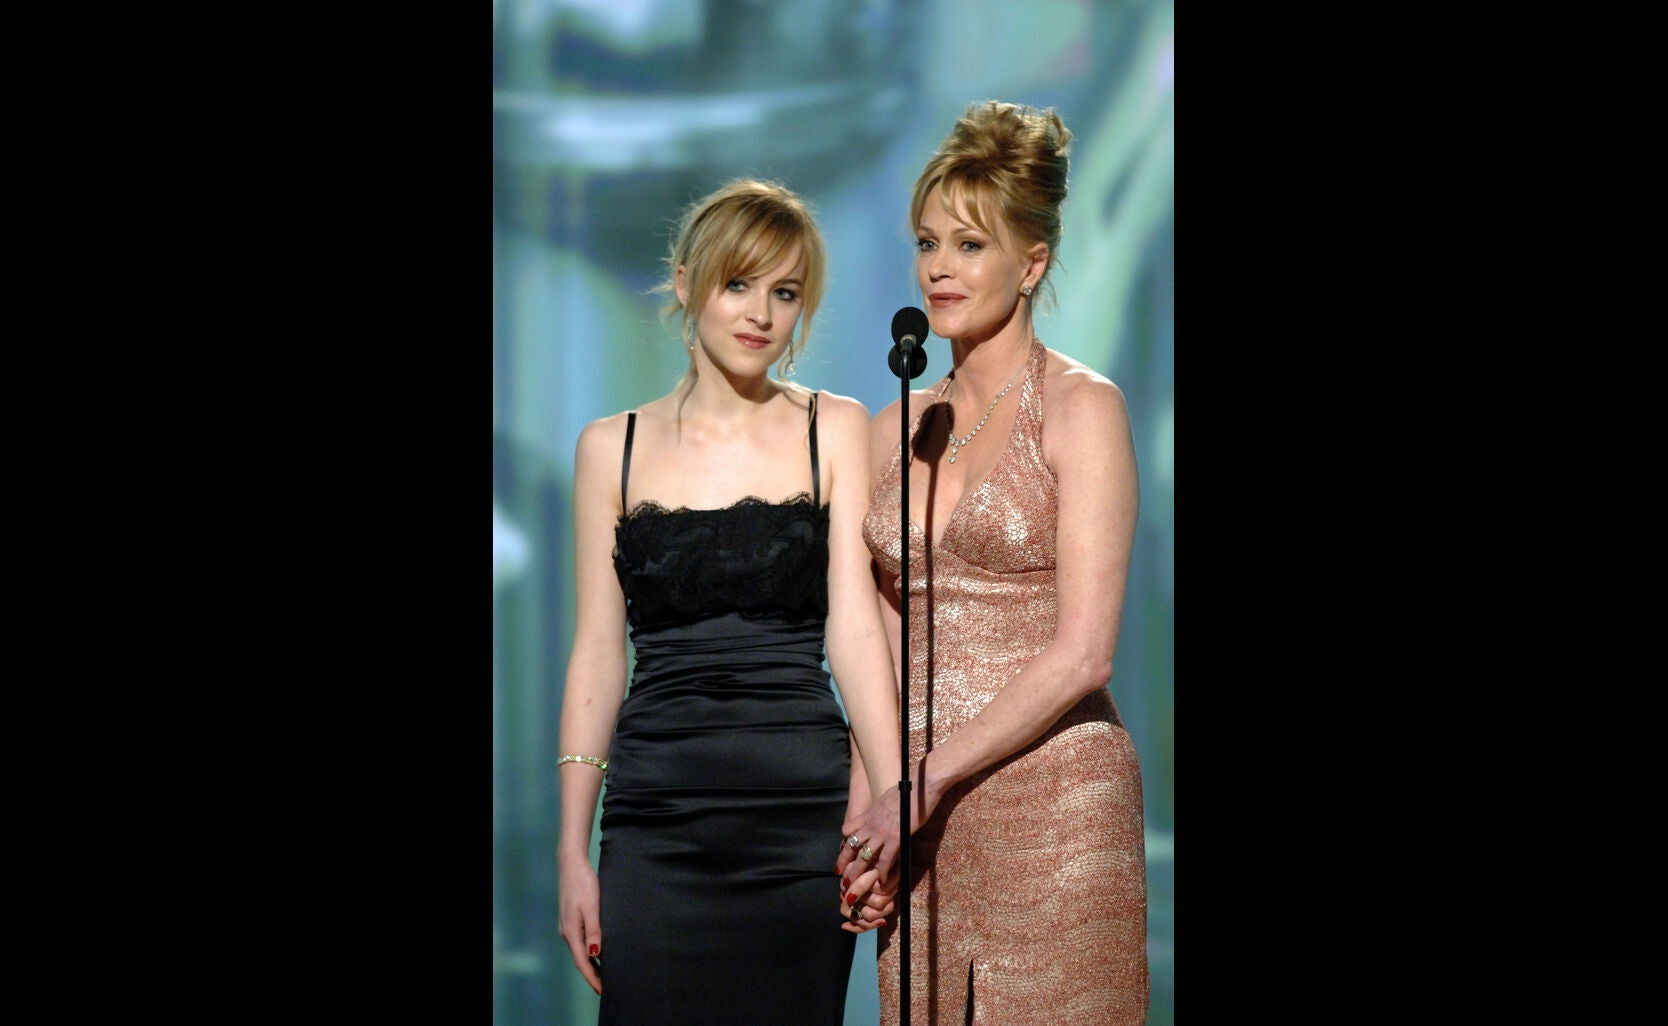 Actresses Dakota Johnson and Melanie Griffith